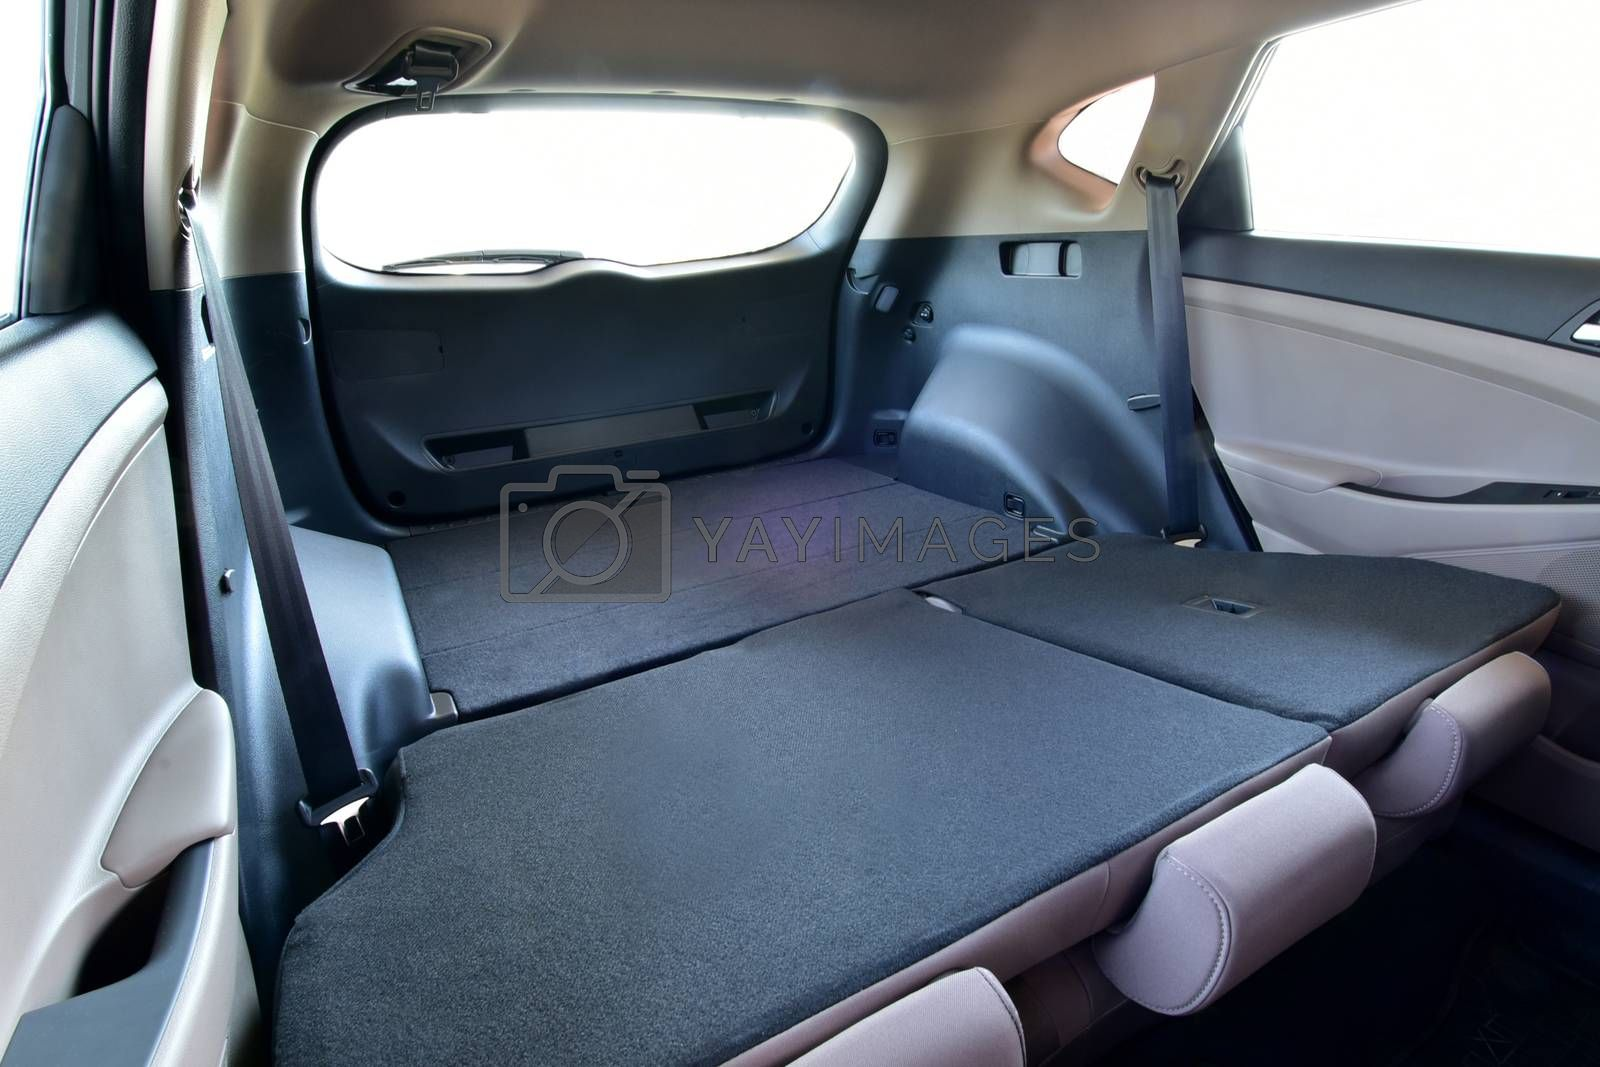 Royalty free image of Car trunk with rear seats folded by aselsa